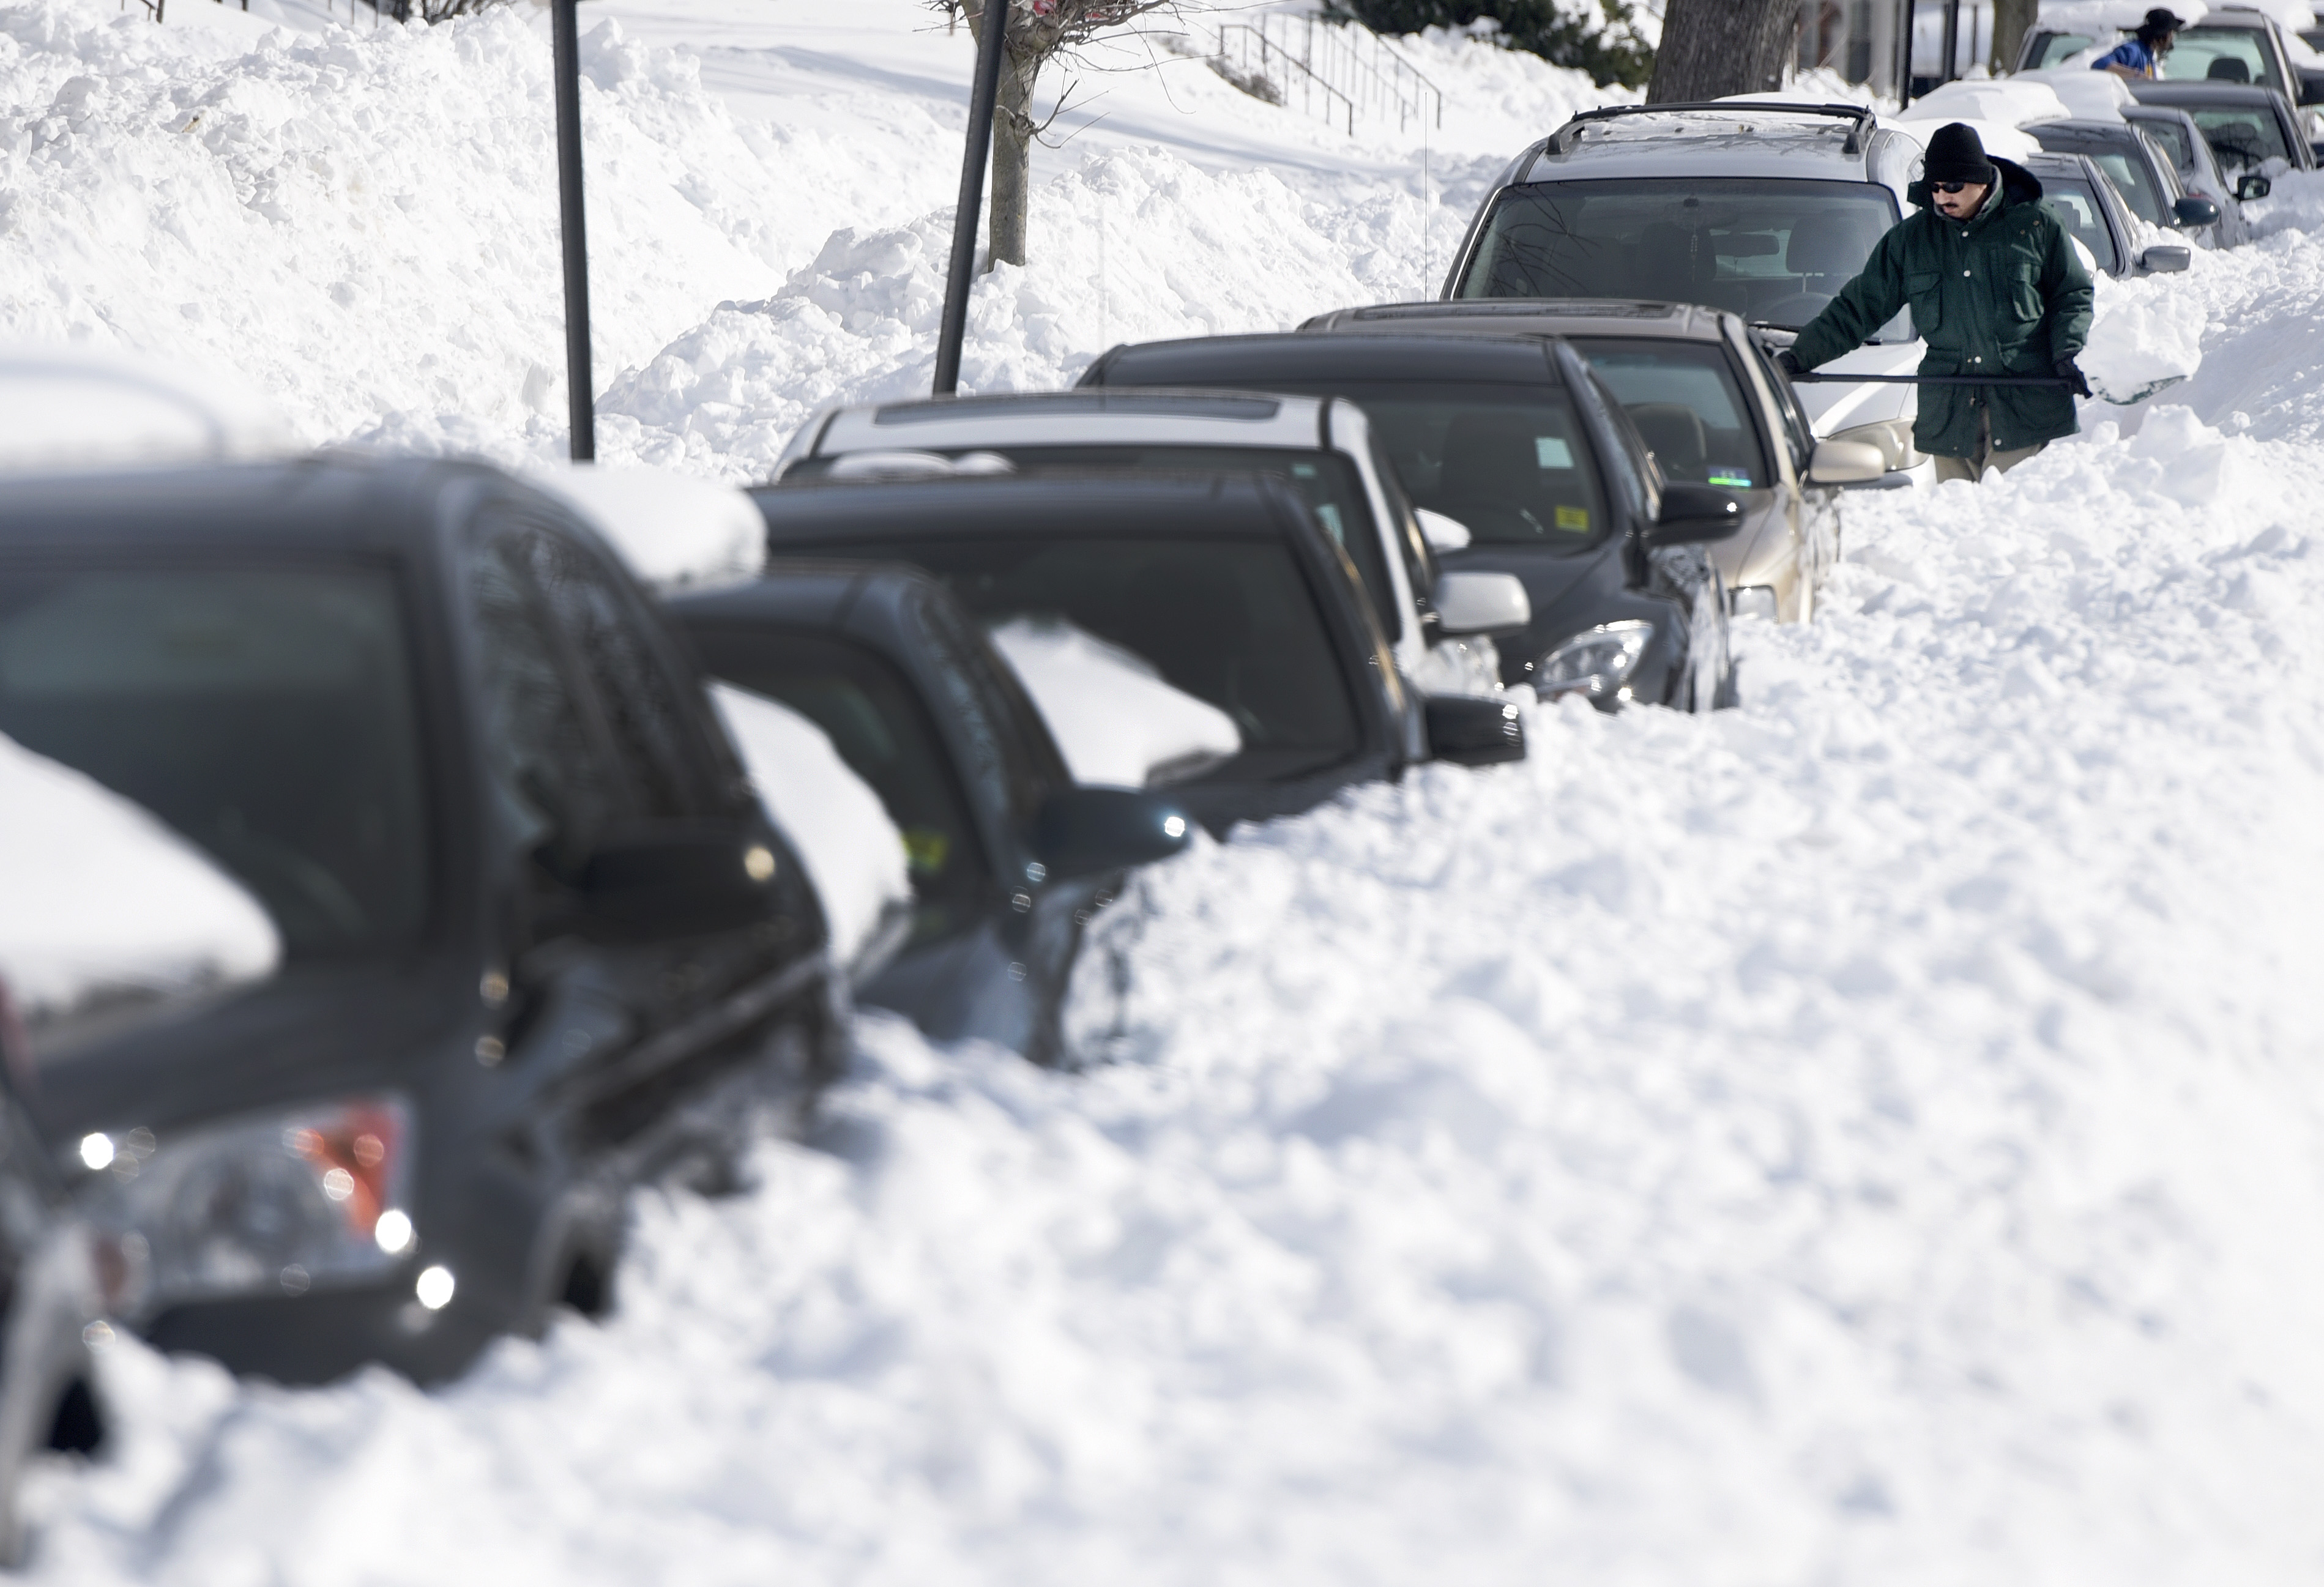 In Md., snow-fighting efforts go high-tech